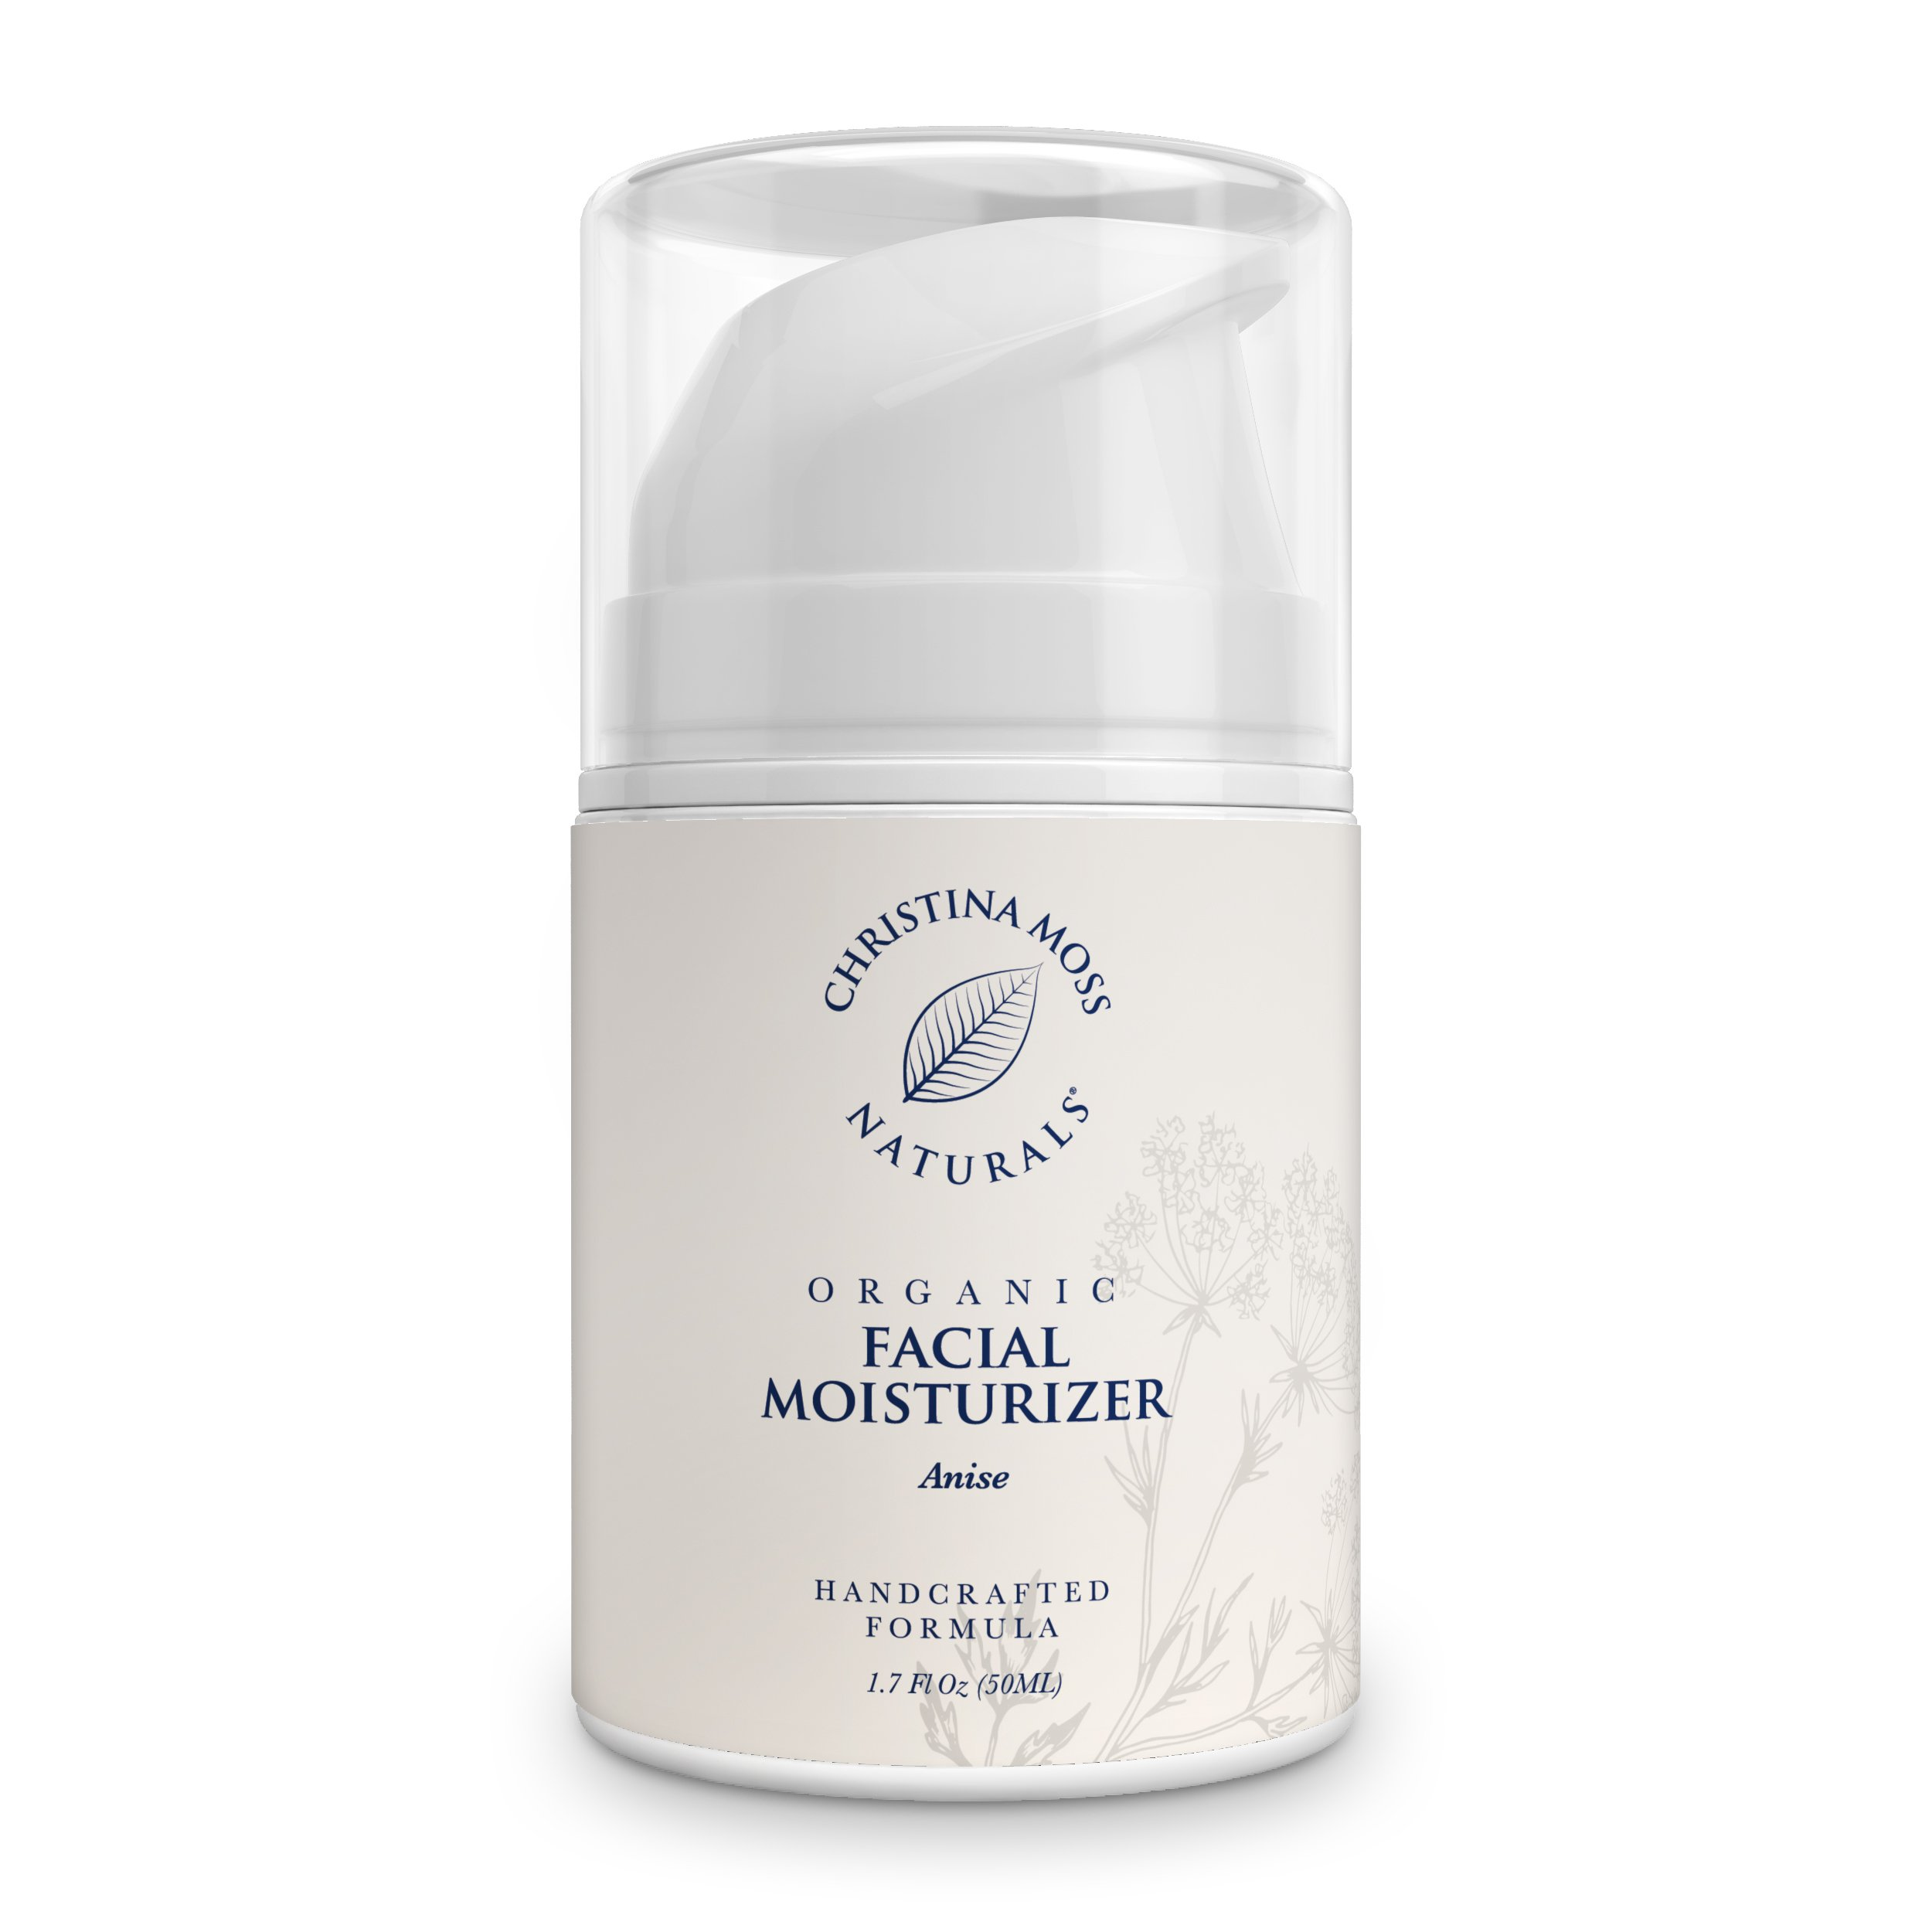 Facial Moisturizer - Organic & Natural Ingredients Face Moisturizing Cream for All Skin Types - Sensitive, Oily, Dry, Severely Dry - Anti-Aging & Anti-Wrinkle for Women & Men - Christina Moss Naturals